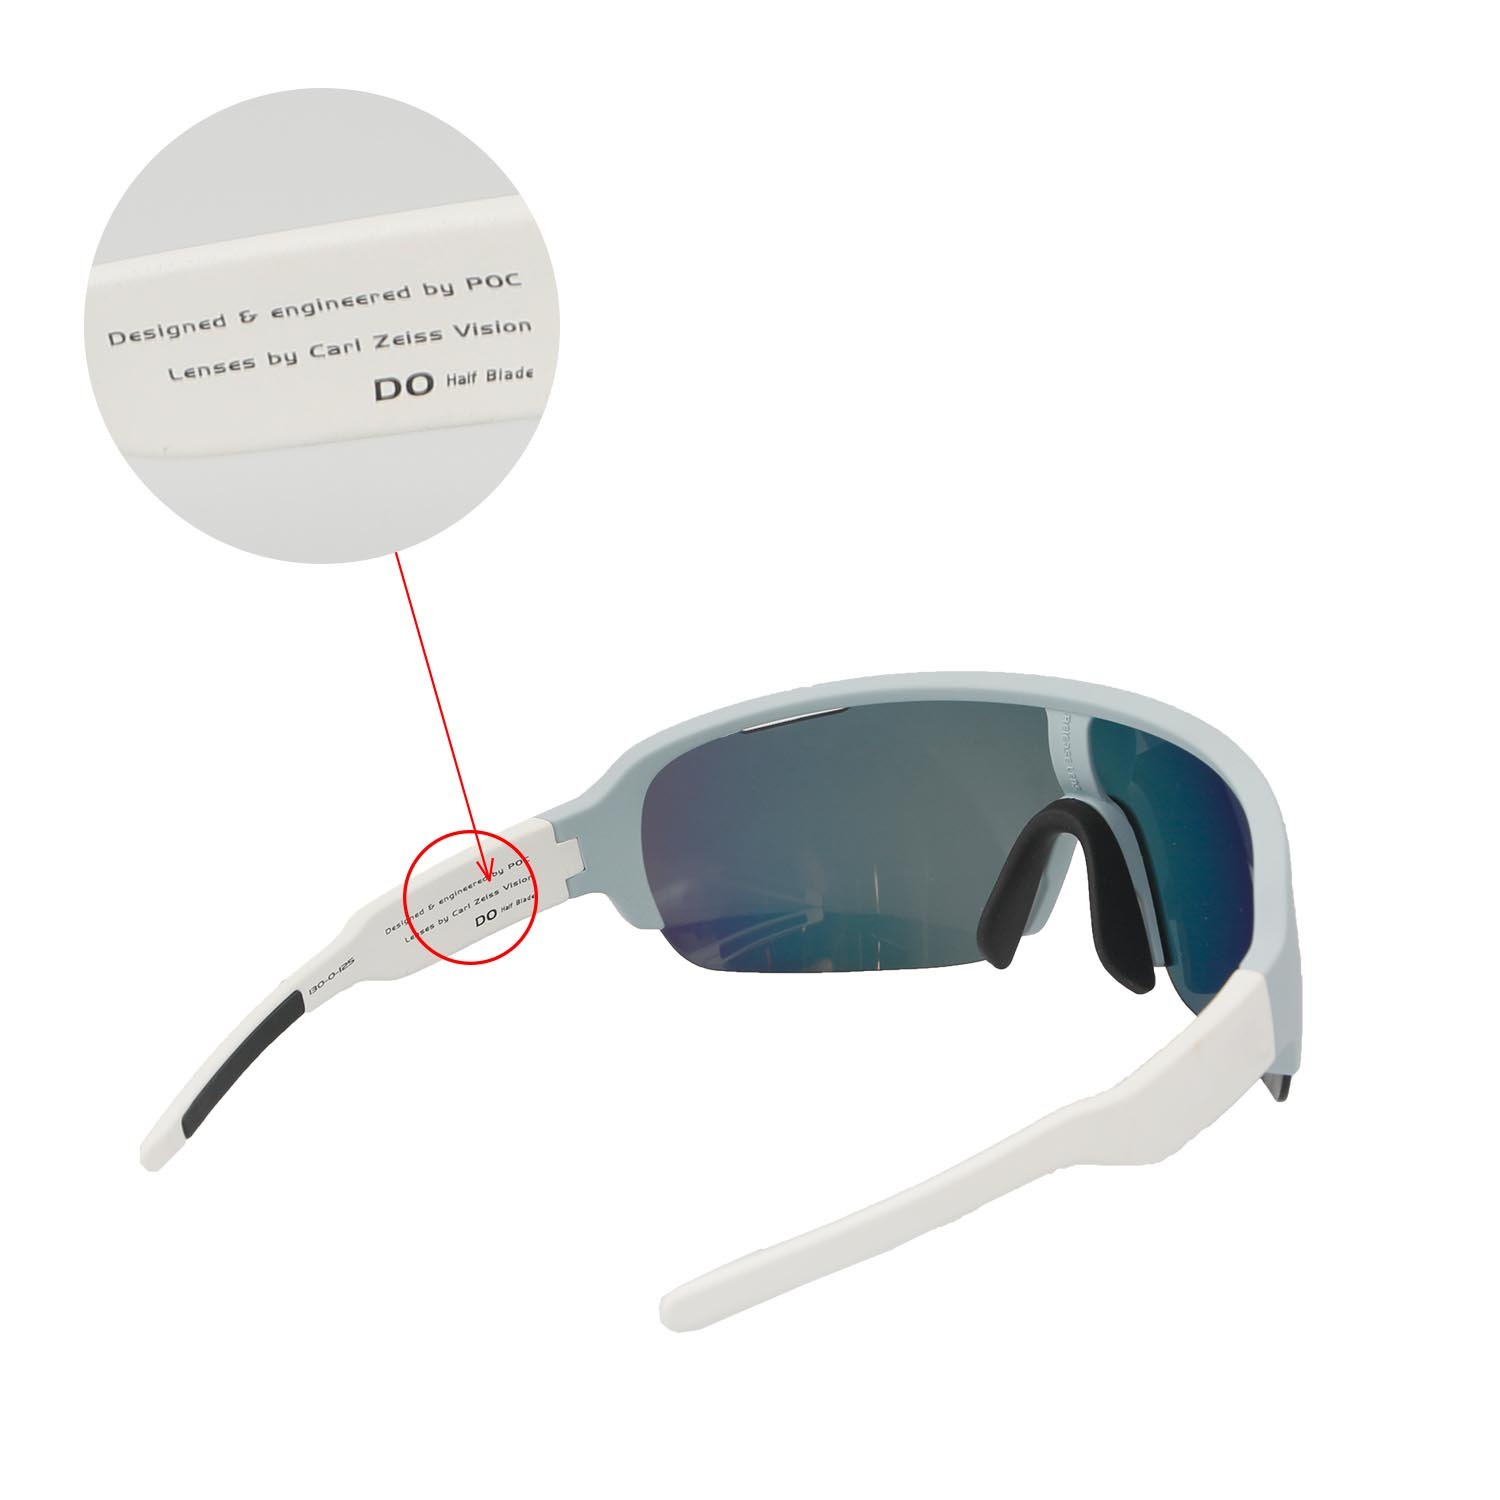 781fc165dfa Amazon.com  Walleva Replacement Lenses for POC Half Blade Sunglasses -  Multiple Options Available (Black - Polarized)  Clothing